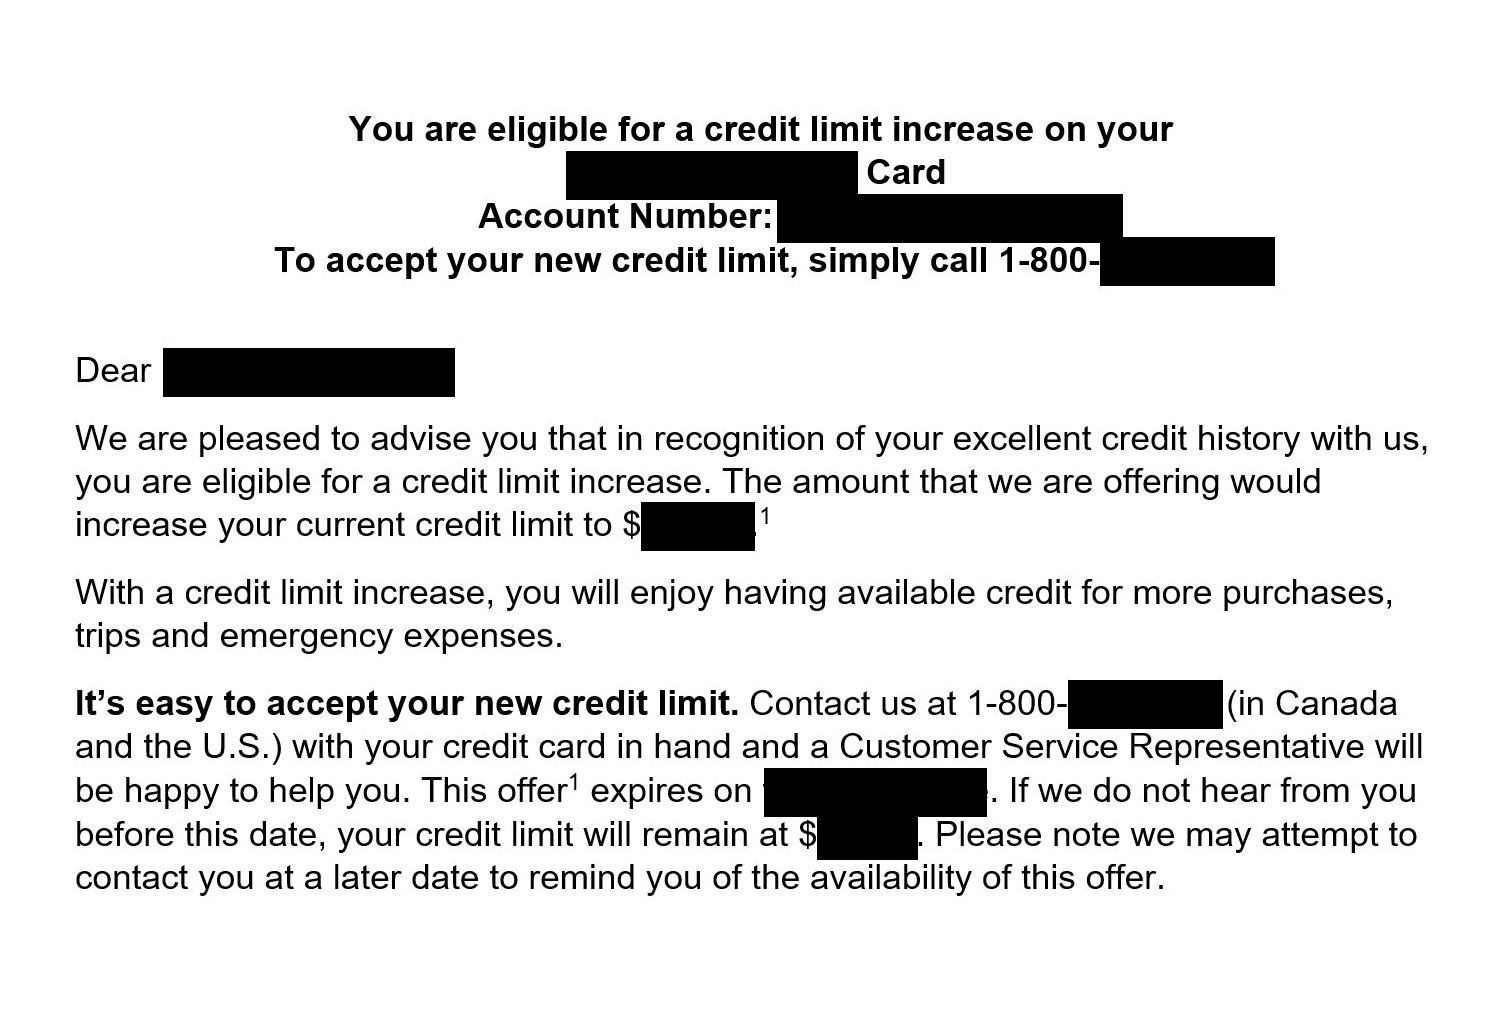 Asking questions about limit increase and balance transfer letter on credit card account.